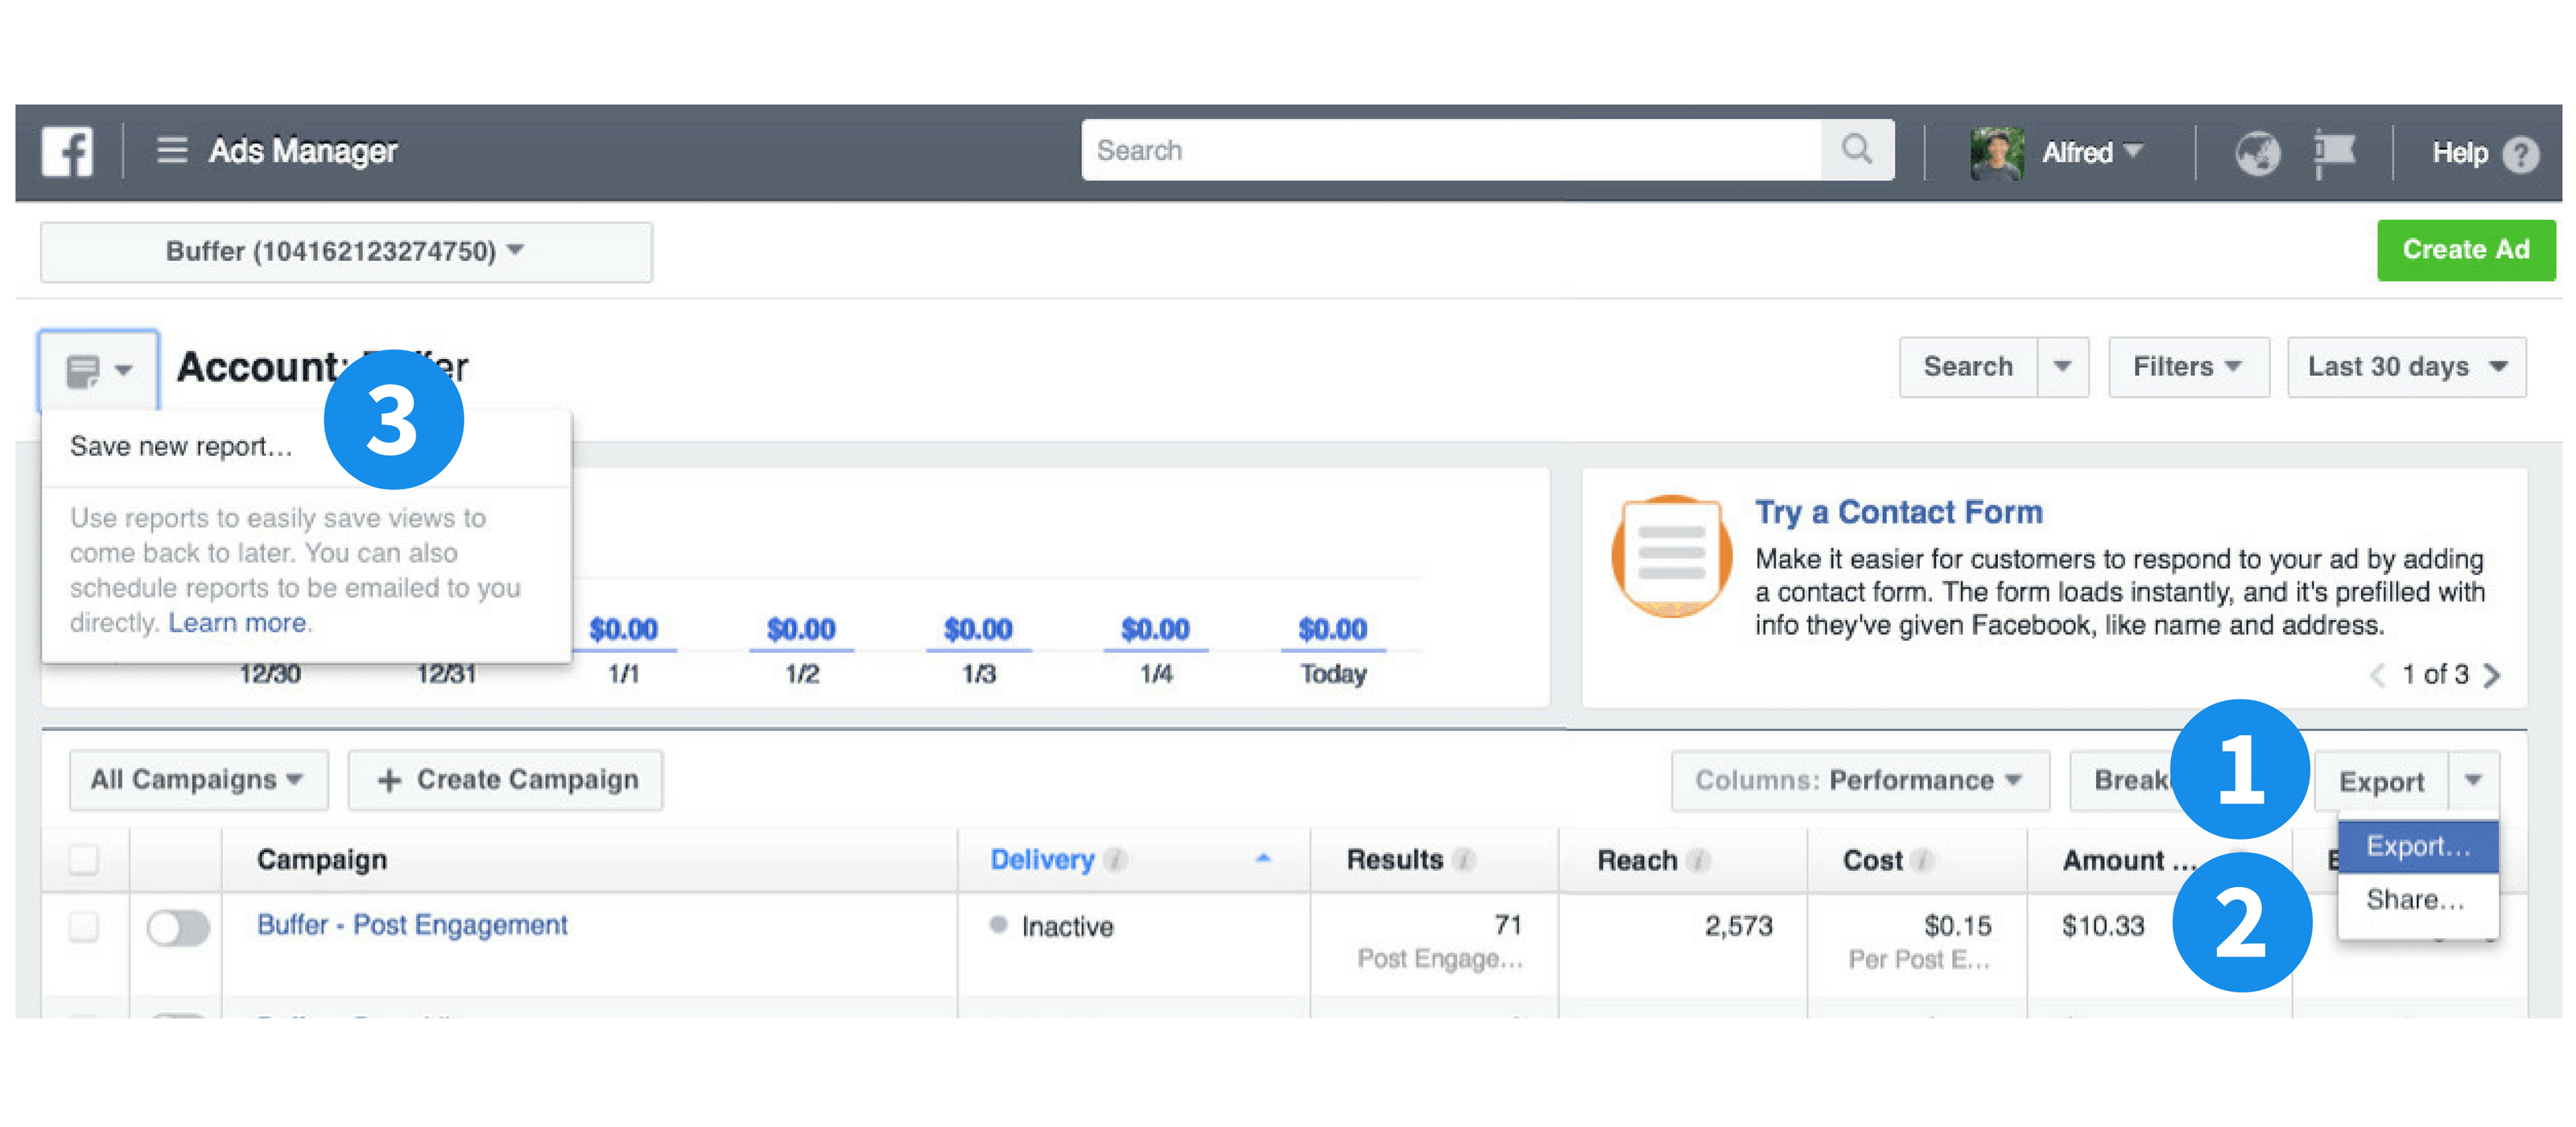 Facebook ads manager export, share, and save